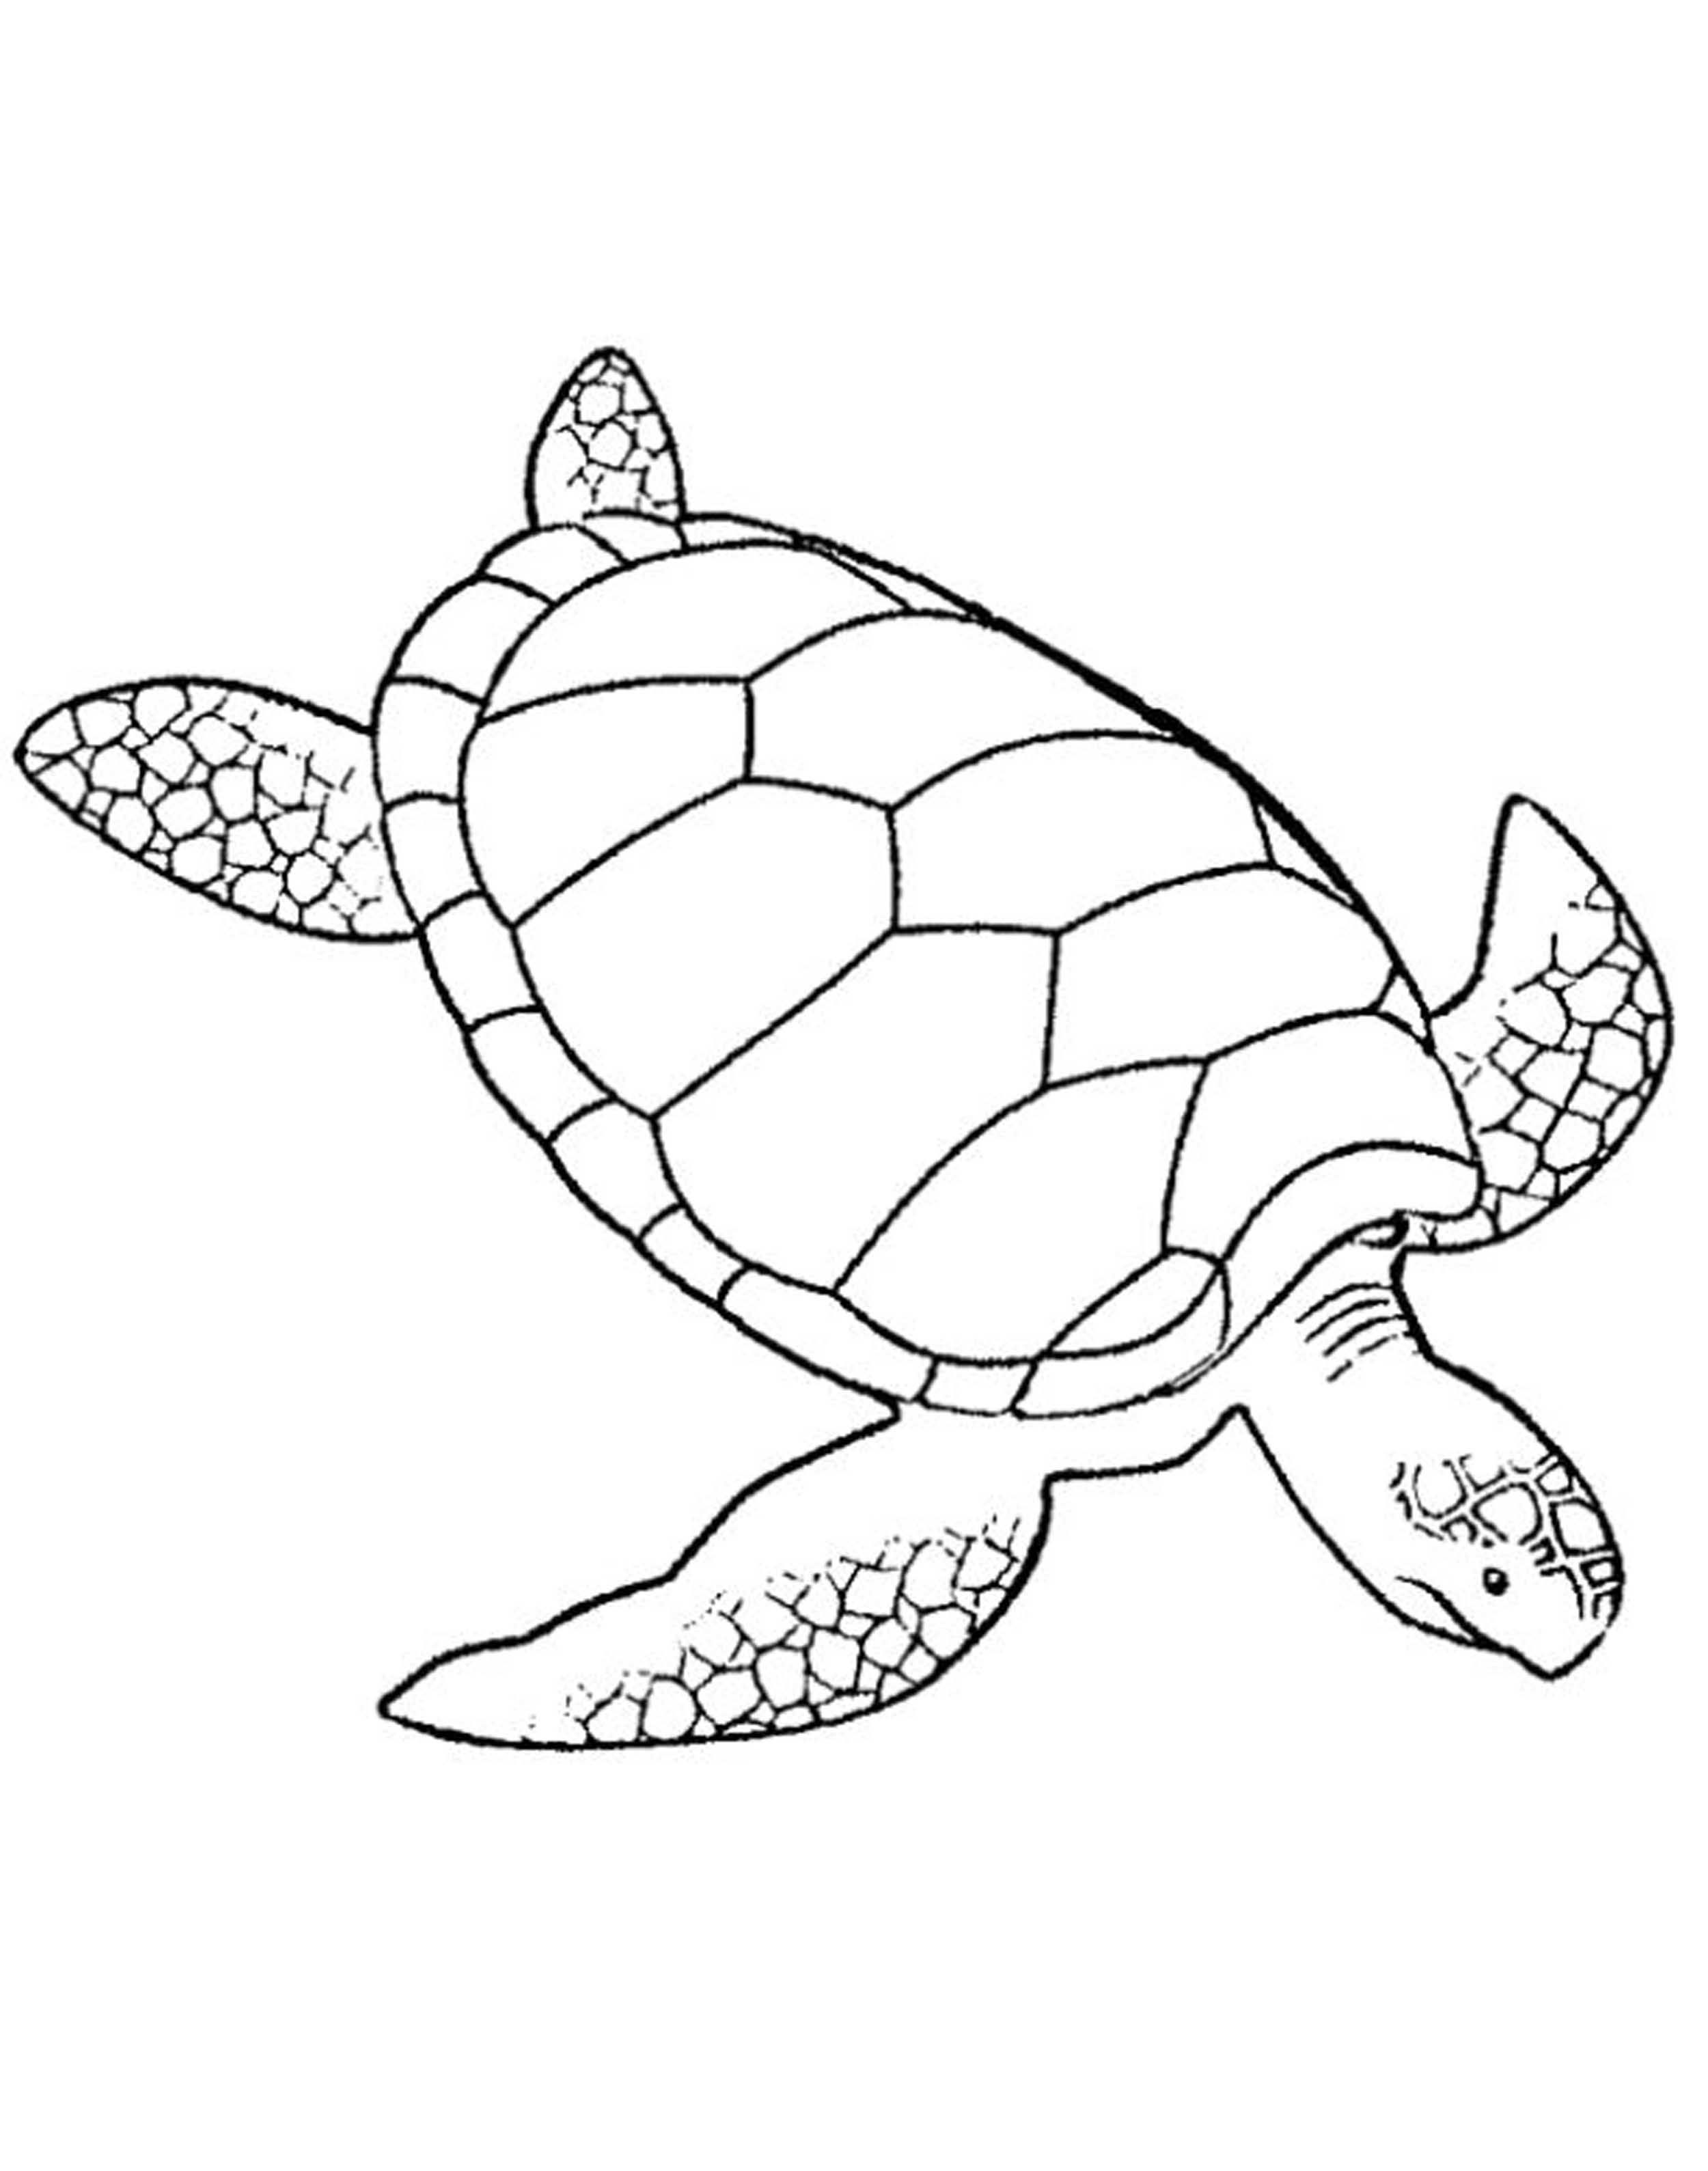 2500x3178 Inspiring Adult Coloring Pages Turtle Pics For Style And Ideas